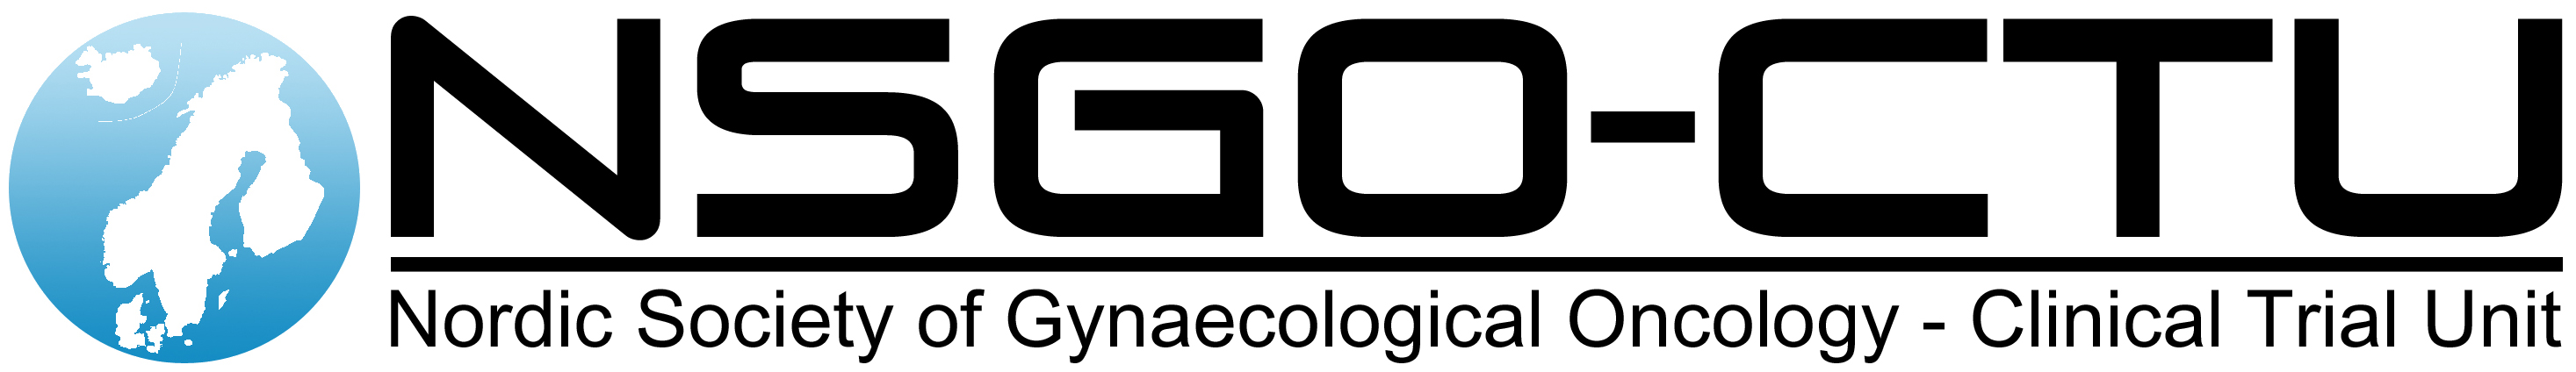 About CTU – Nordic Society of Gynaecological Oncology | NSGO